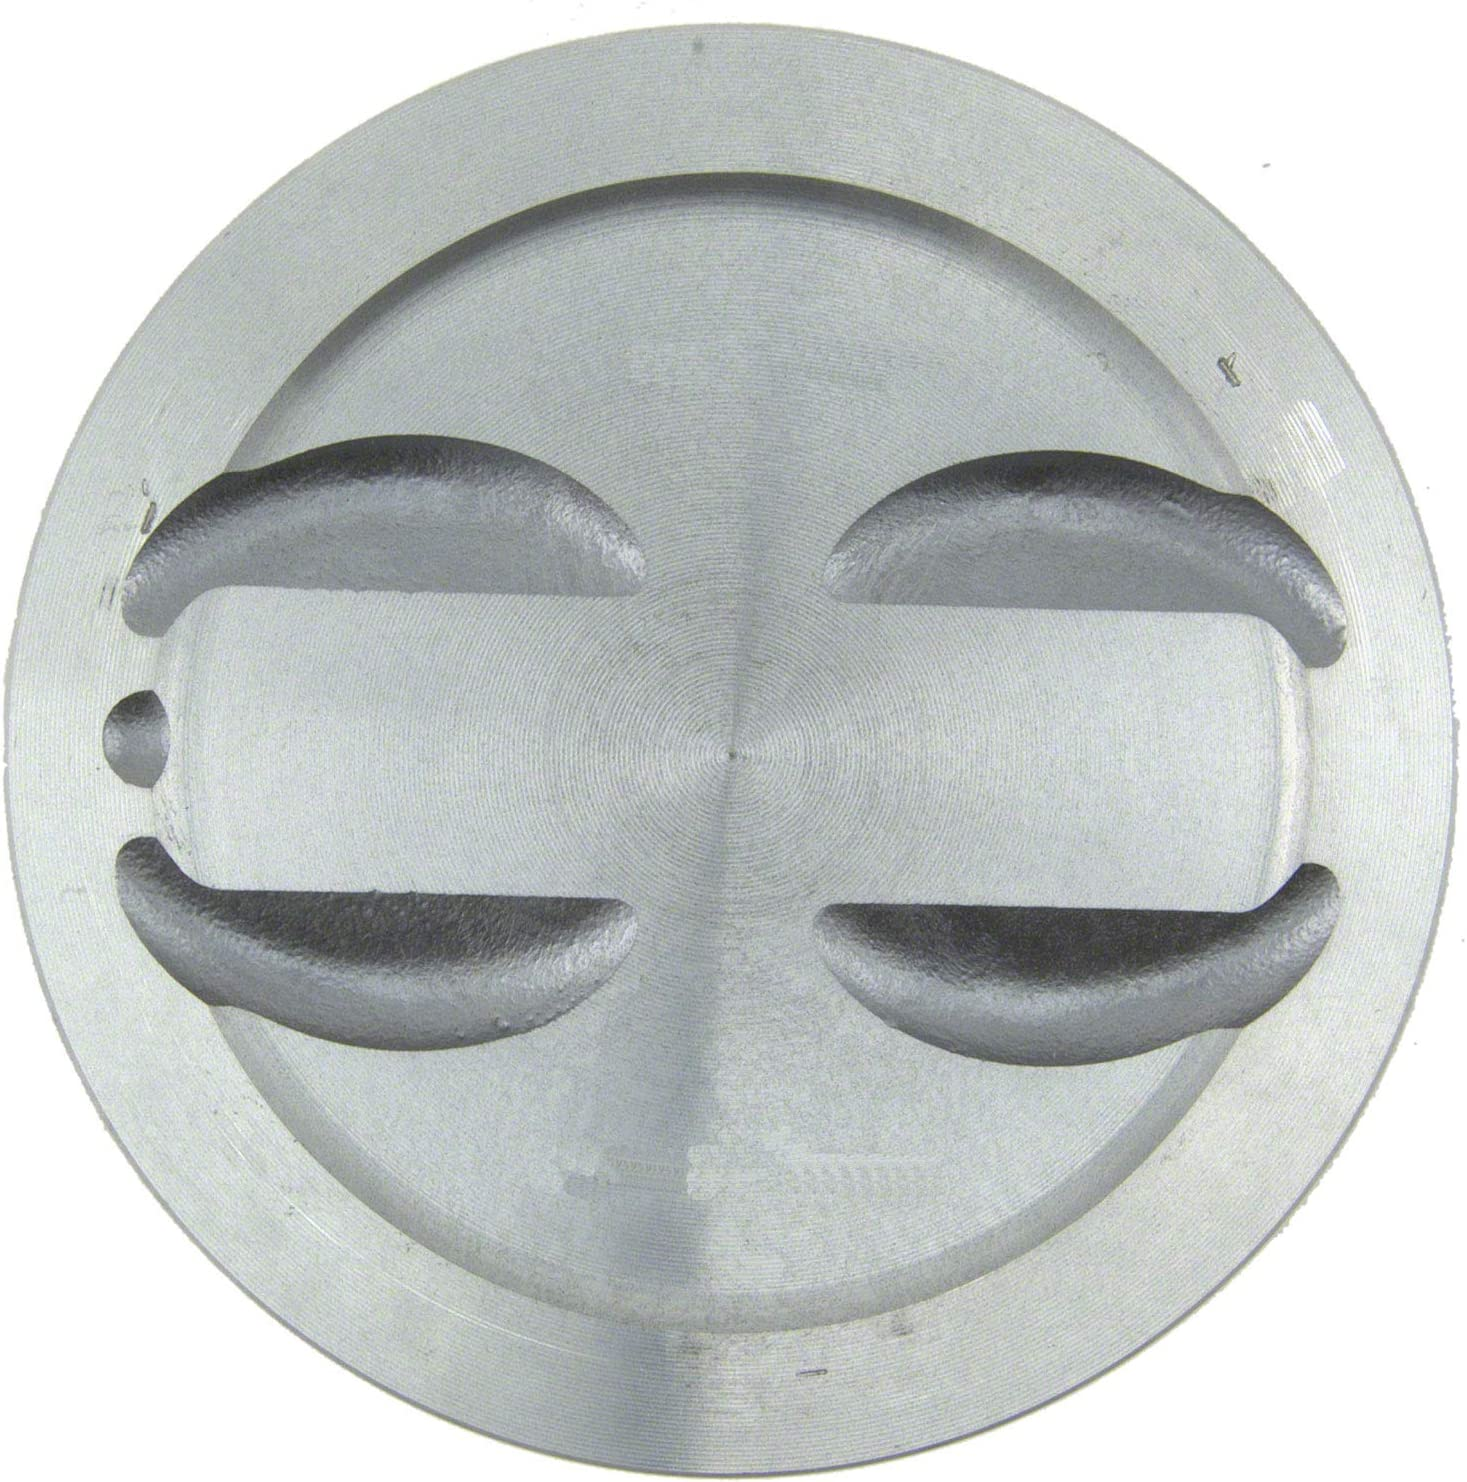 Sealed Power L-2352F60 Forged store Piston Max 64% OFF